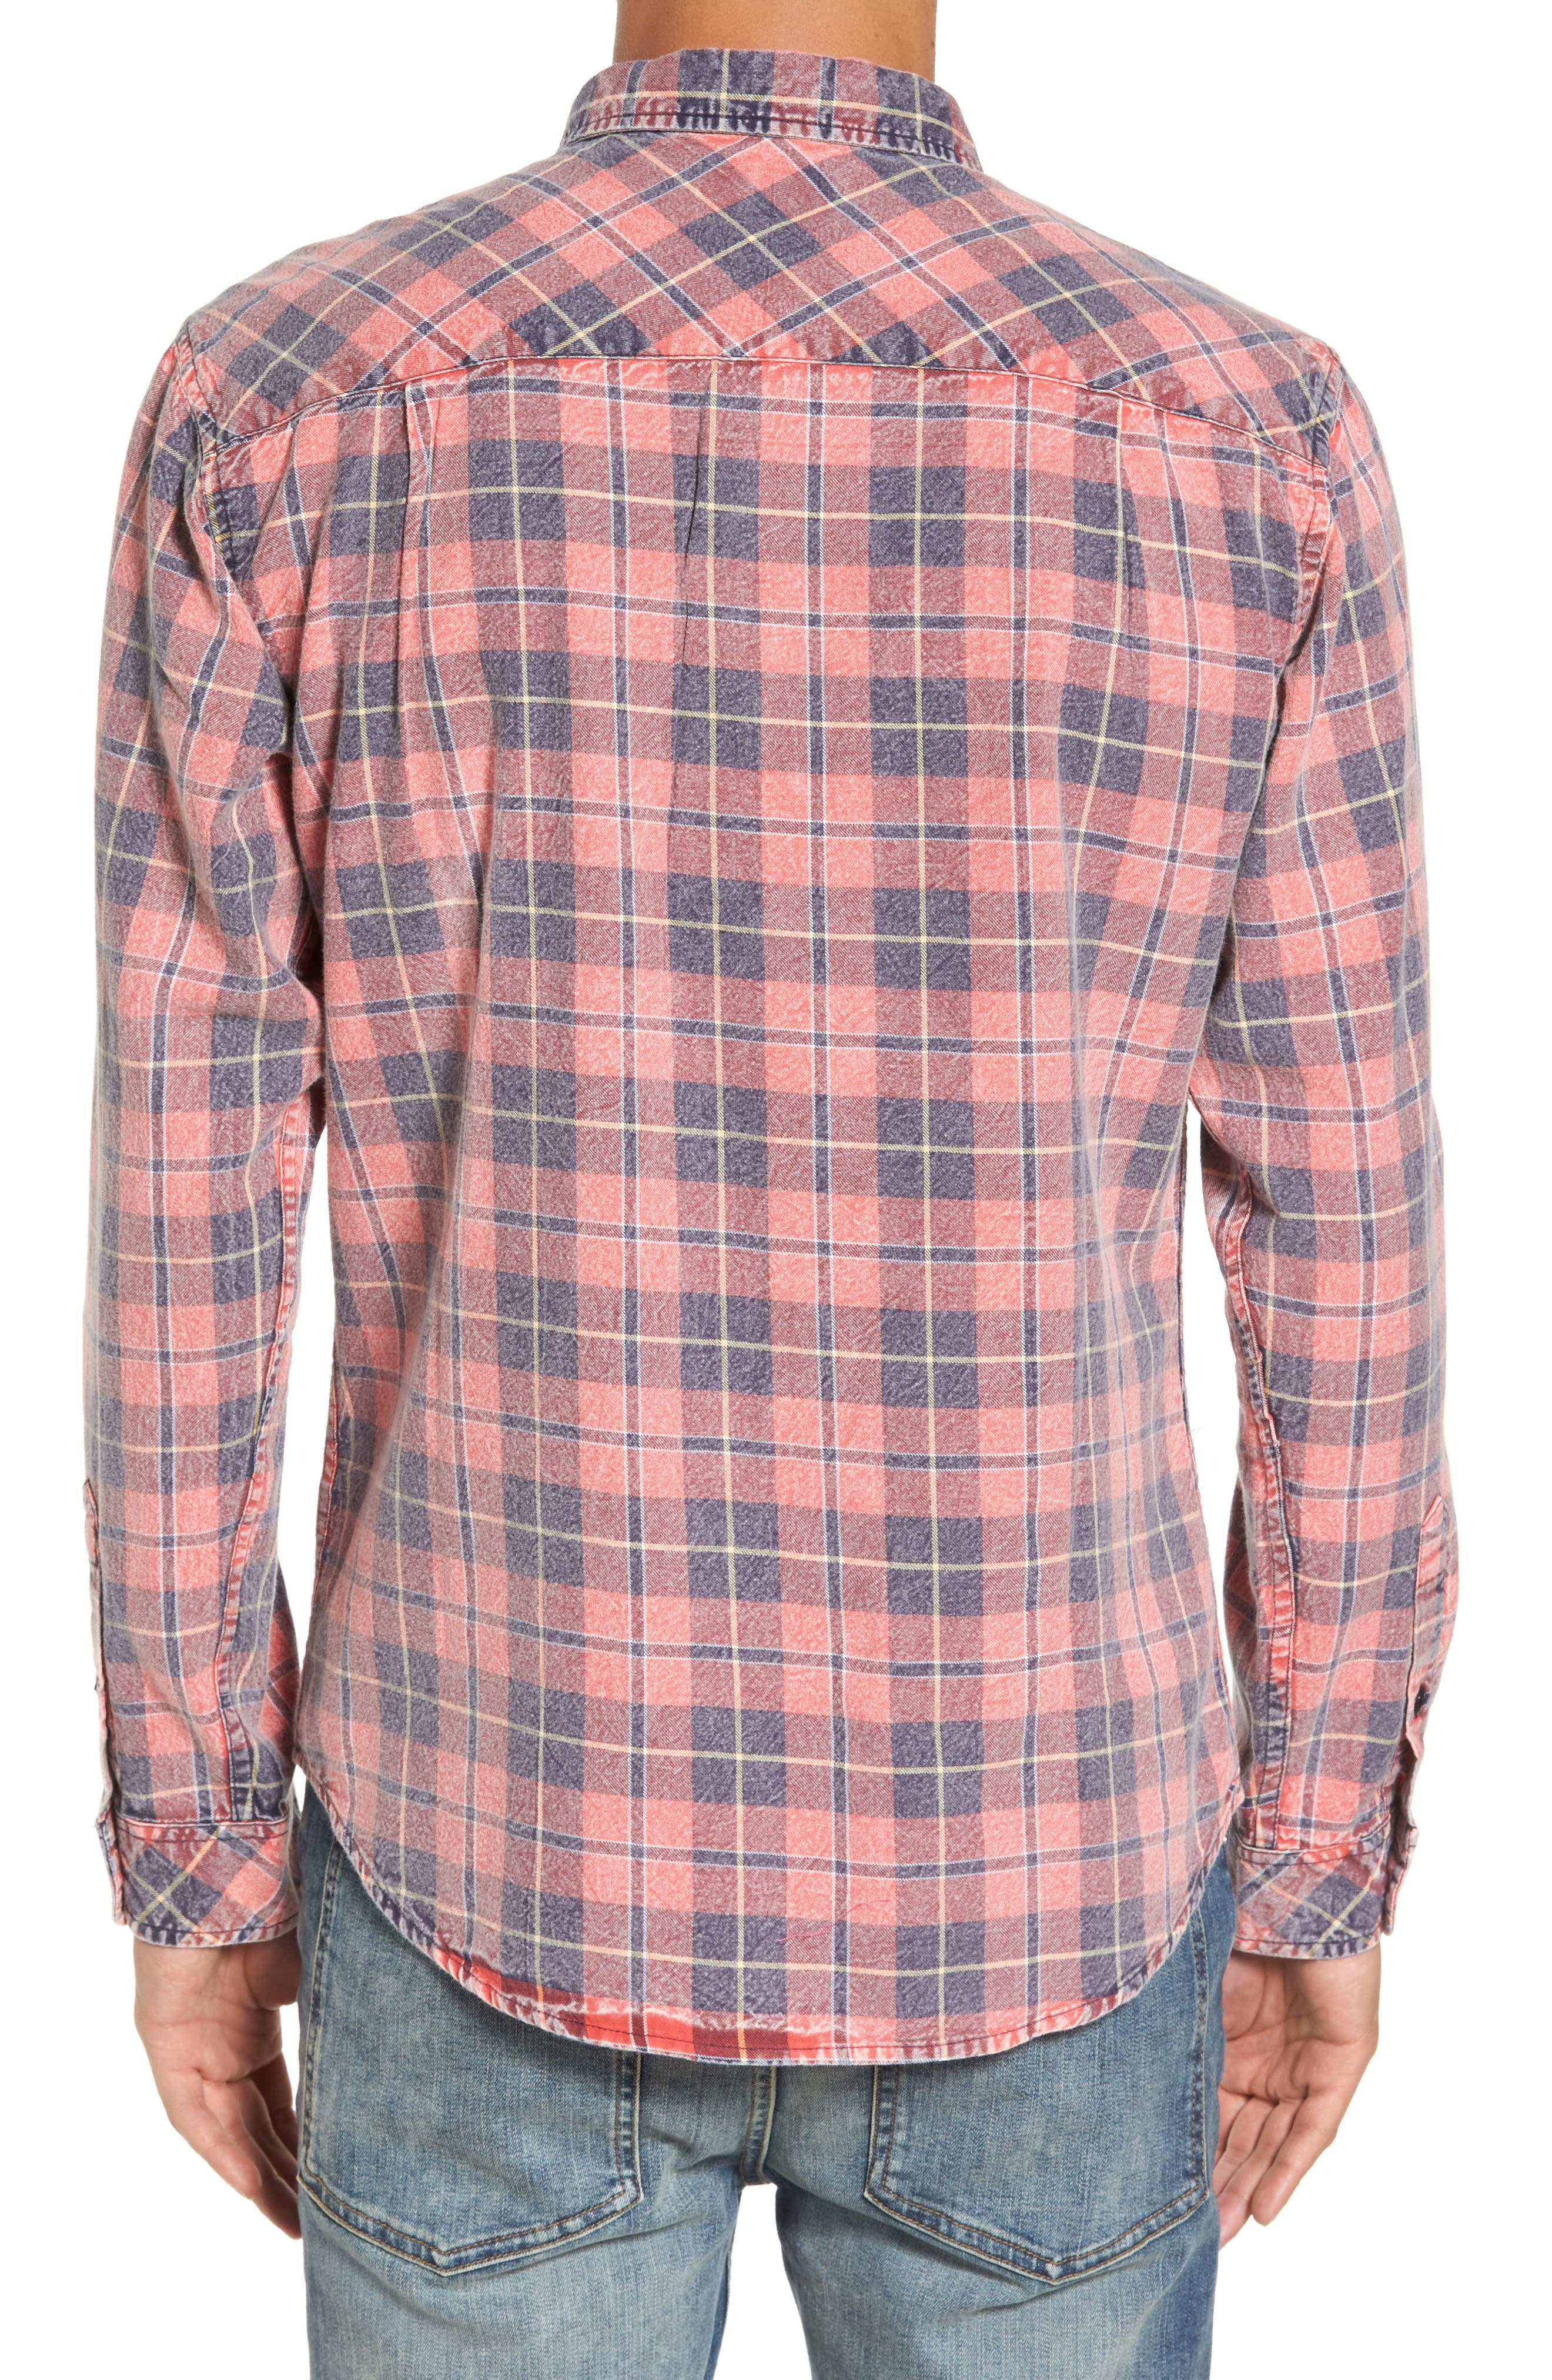 Greenwich Flannel Shirt,                             Alternate thumbnail 2, color,                             600